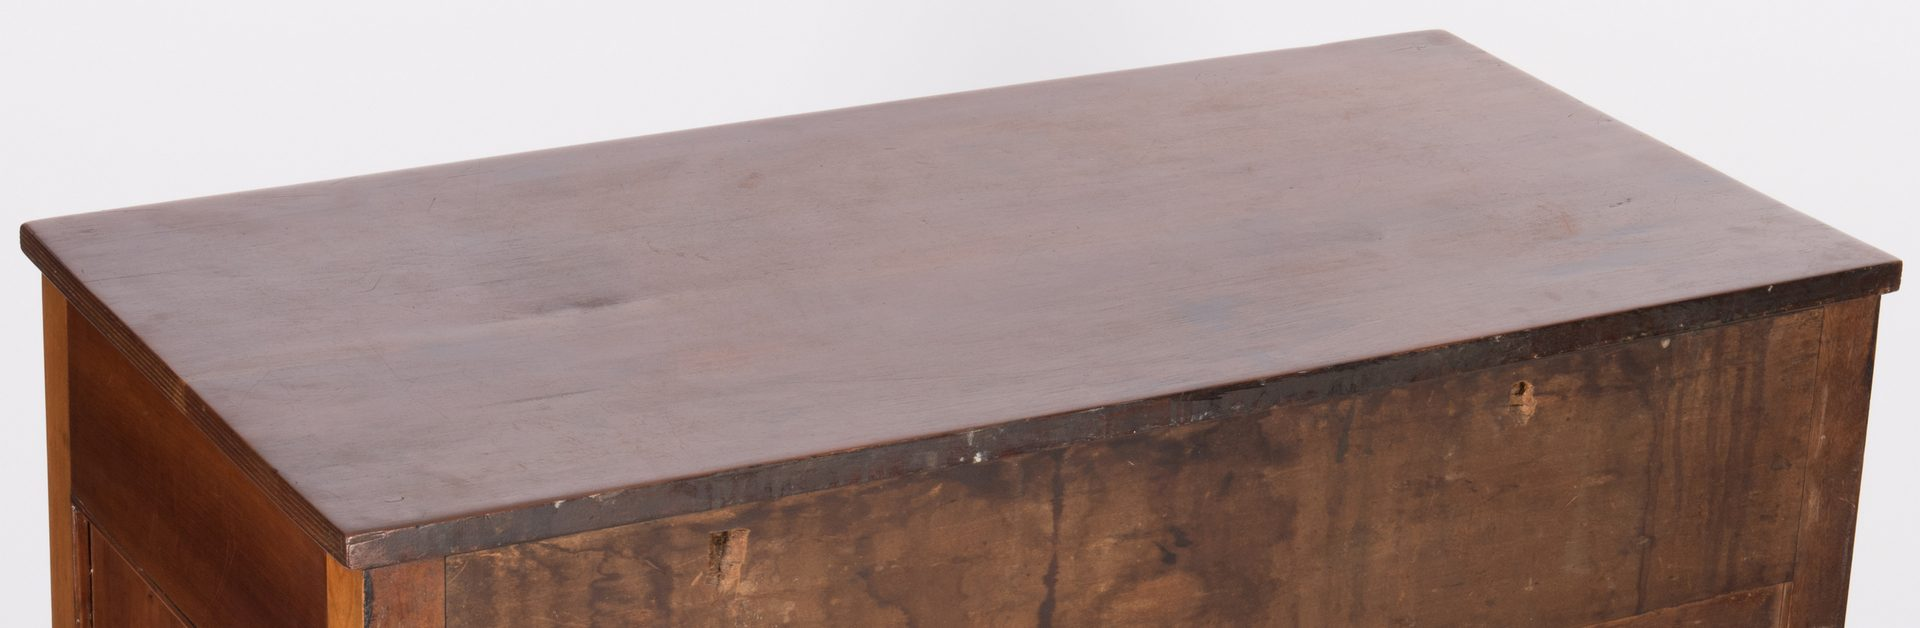 Lot 375: East TN Sheraton Chest of Drawers, Turned Feet